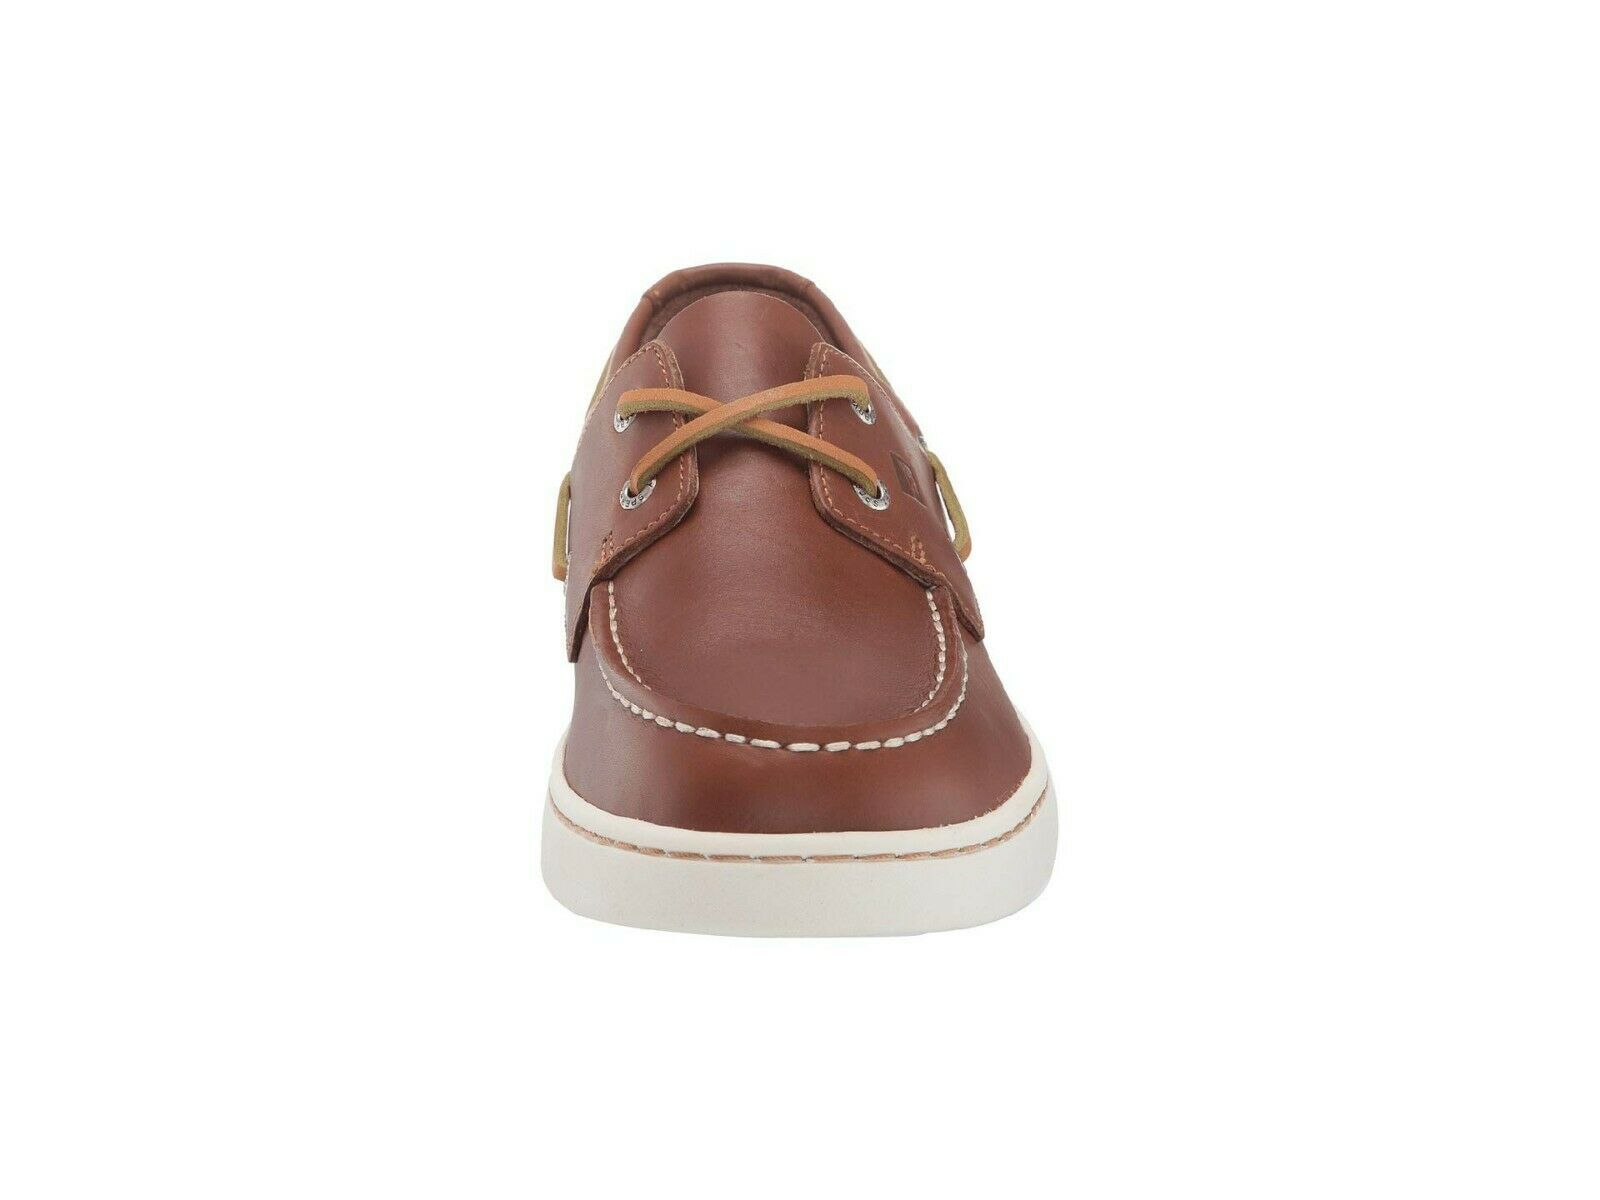 Men's Sperry Top-Sider Cup 2 Eye Leather Oxford, STS18791 Multiple Sizes Tan image 7